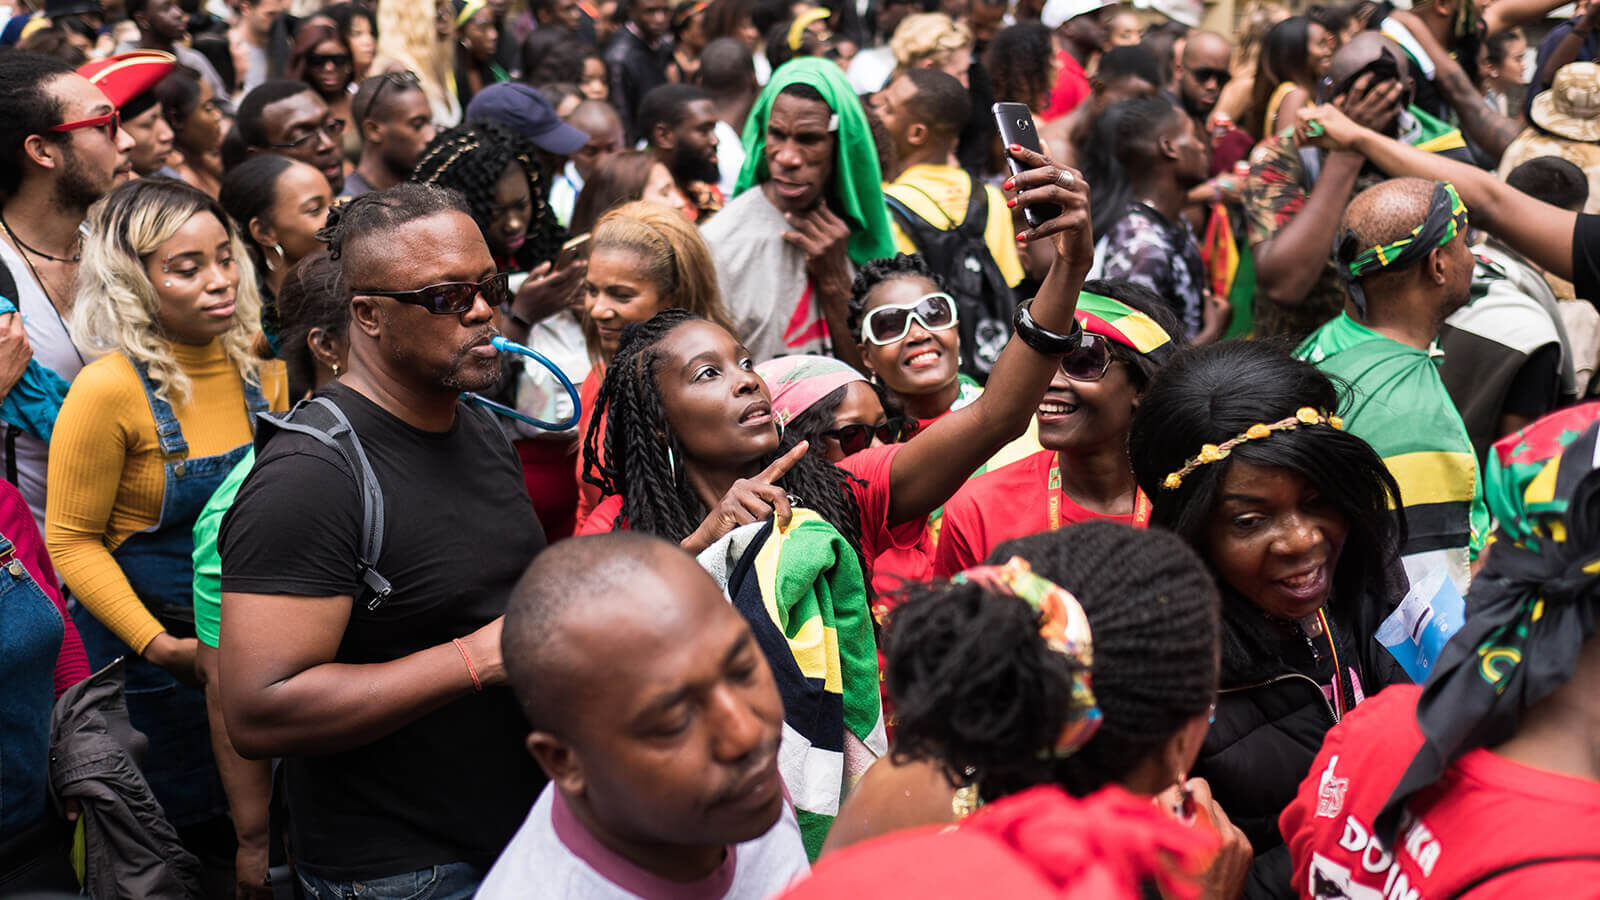 Carnival, Blackness and Safety in Public Space